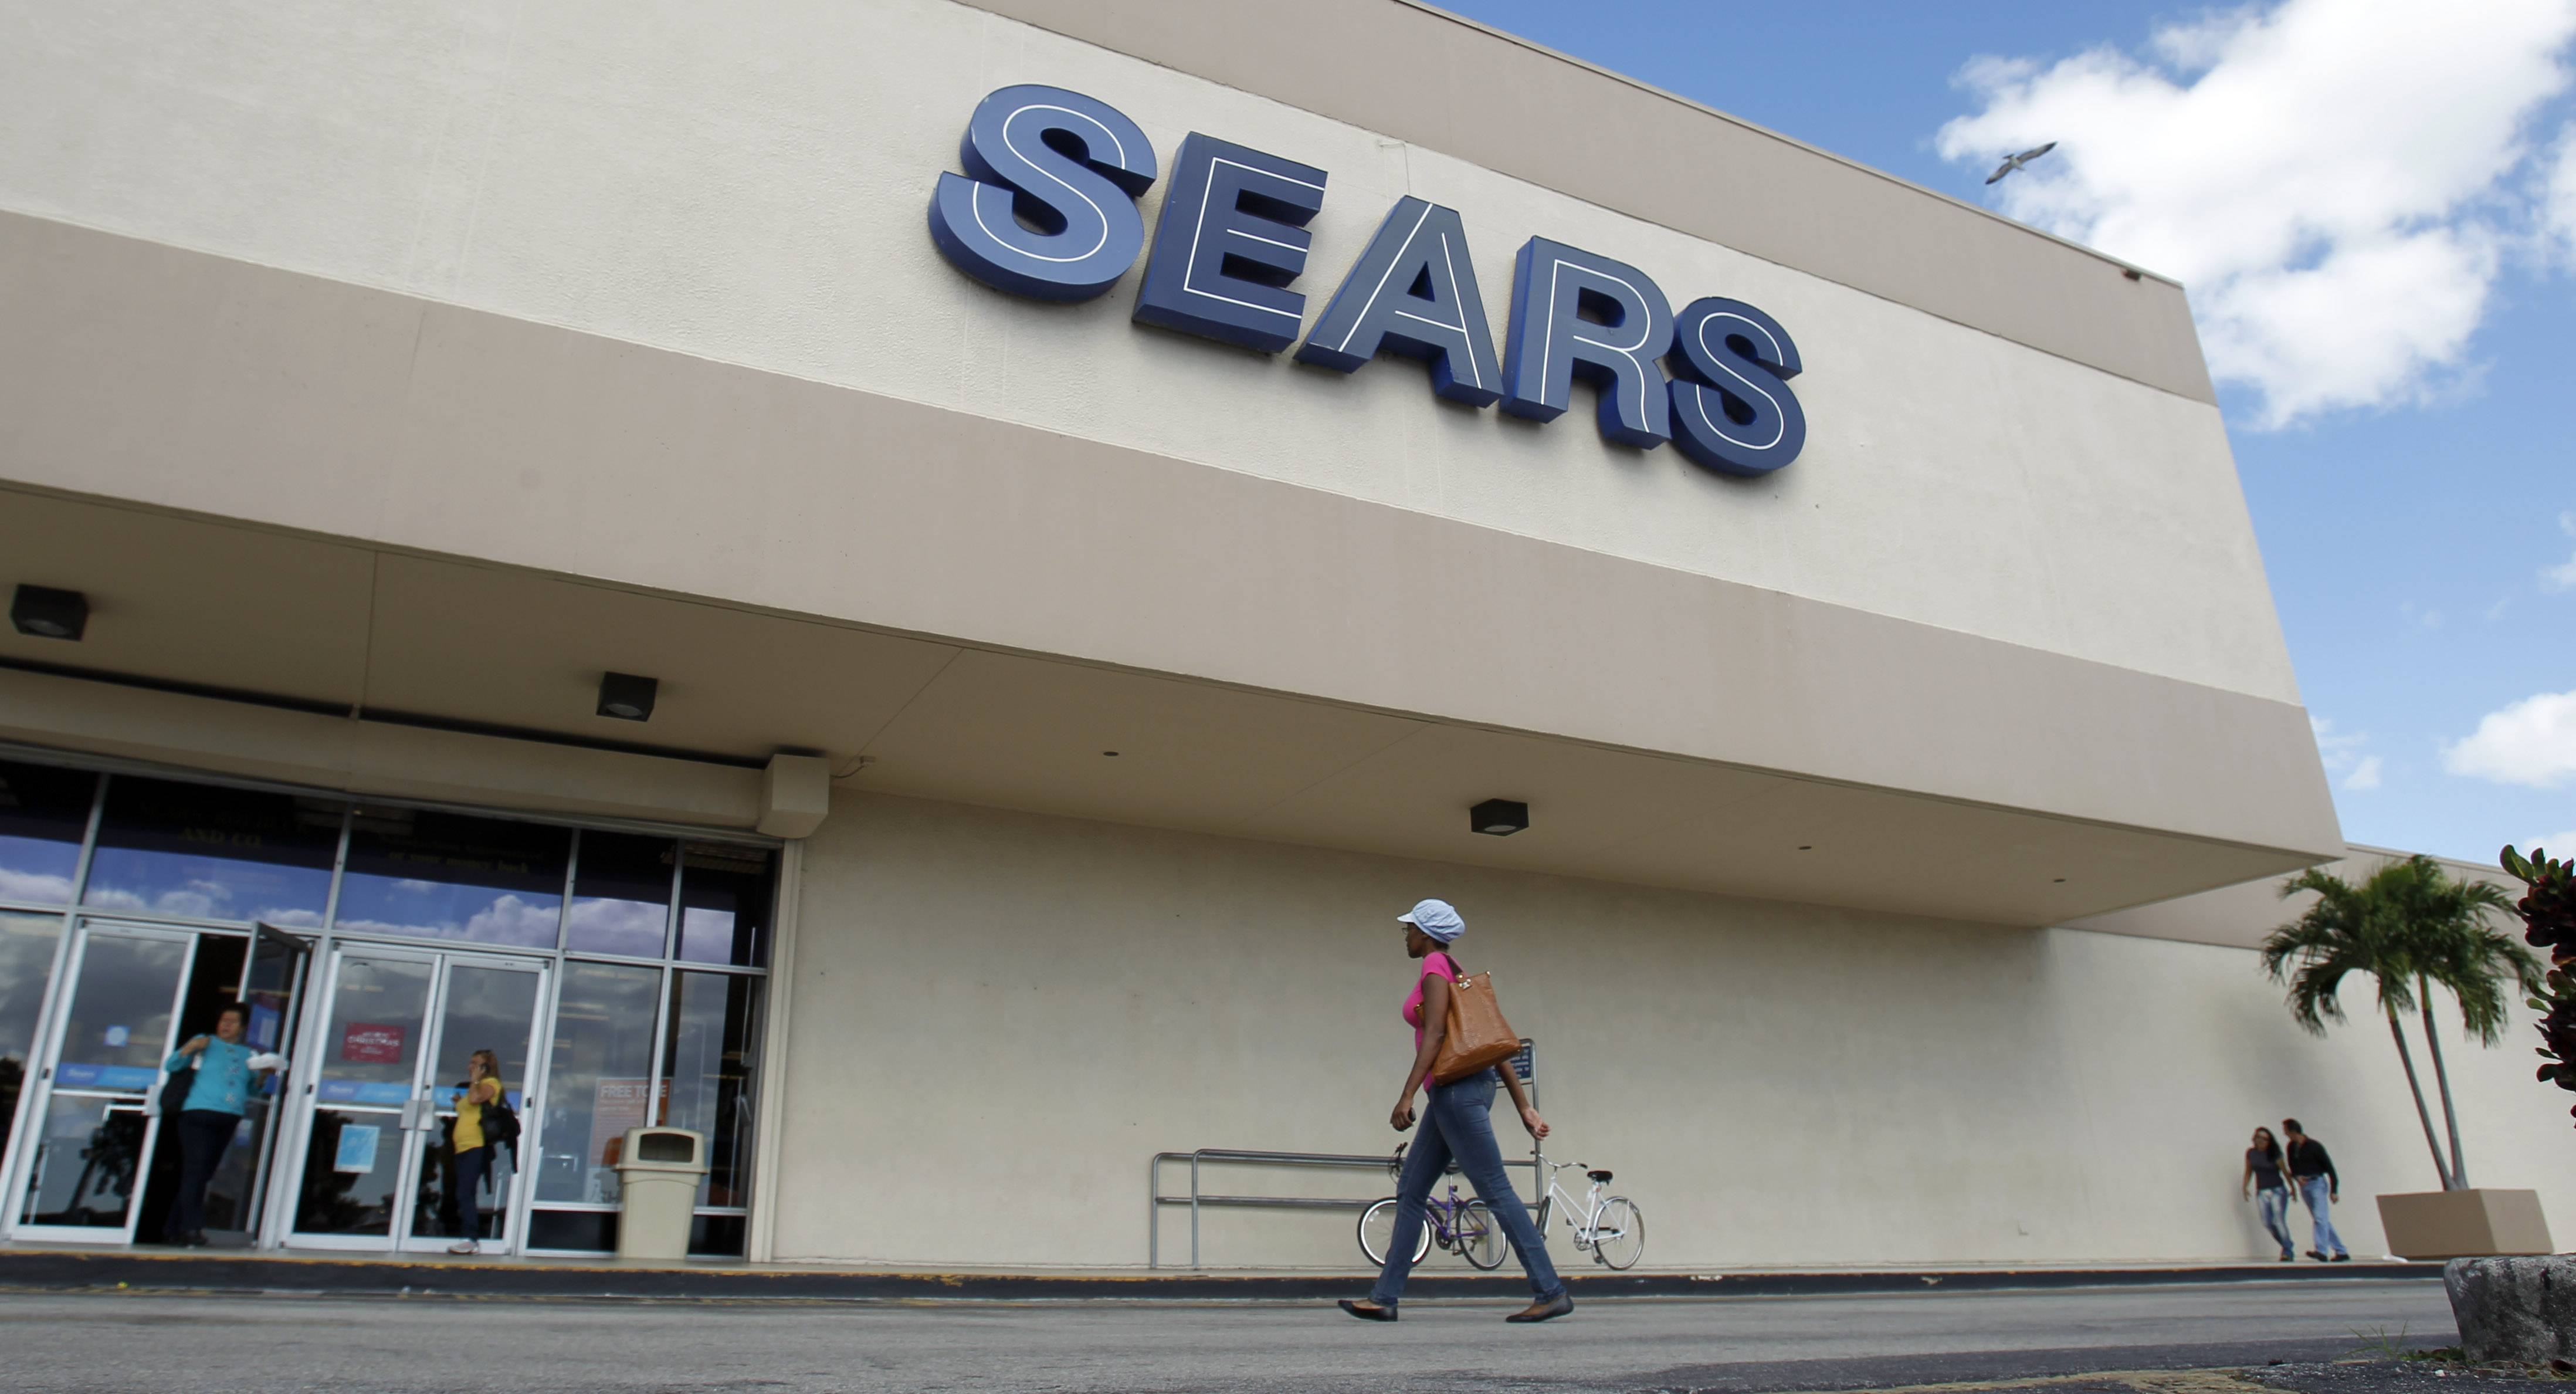 Associated Press Sears said Thursday that its second-quarter loss widened as it continues to deal with weak sales.